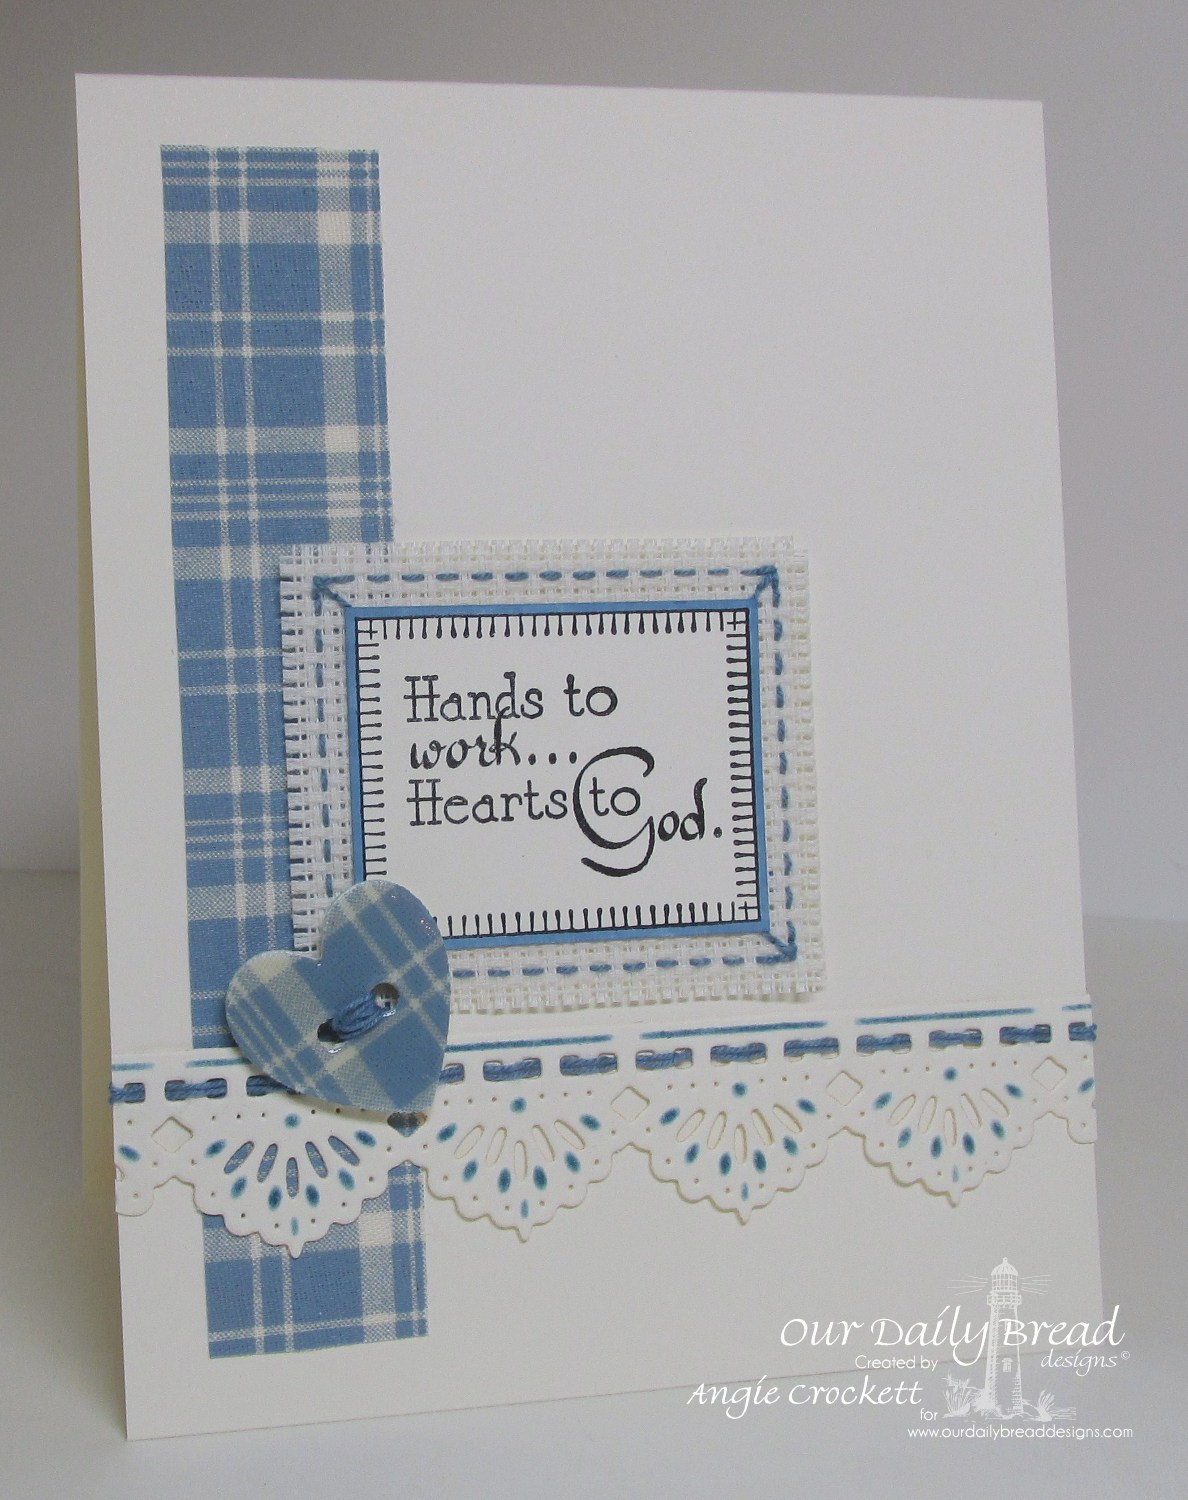 Stamps - Our Daily Bread Designs Sewing, ODBD Custom Beautiful Borders Dies, ODBD Custom Ornate Hearts Dies